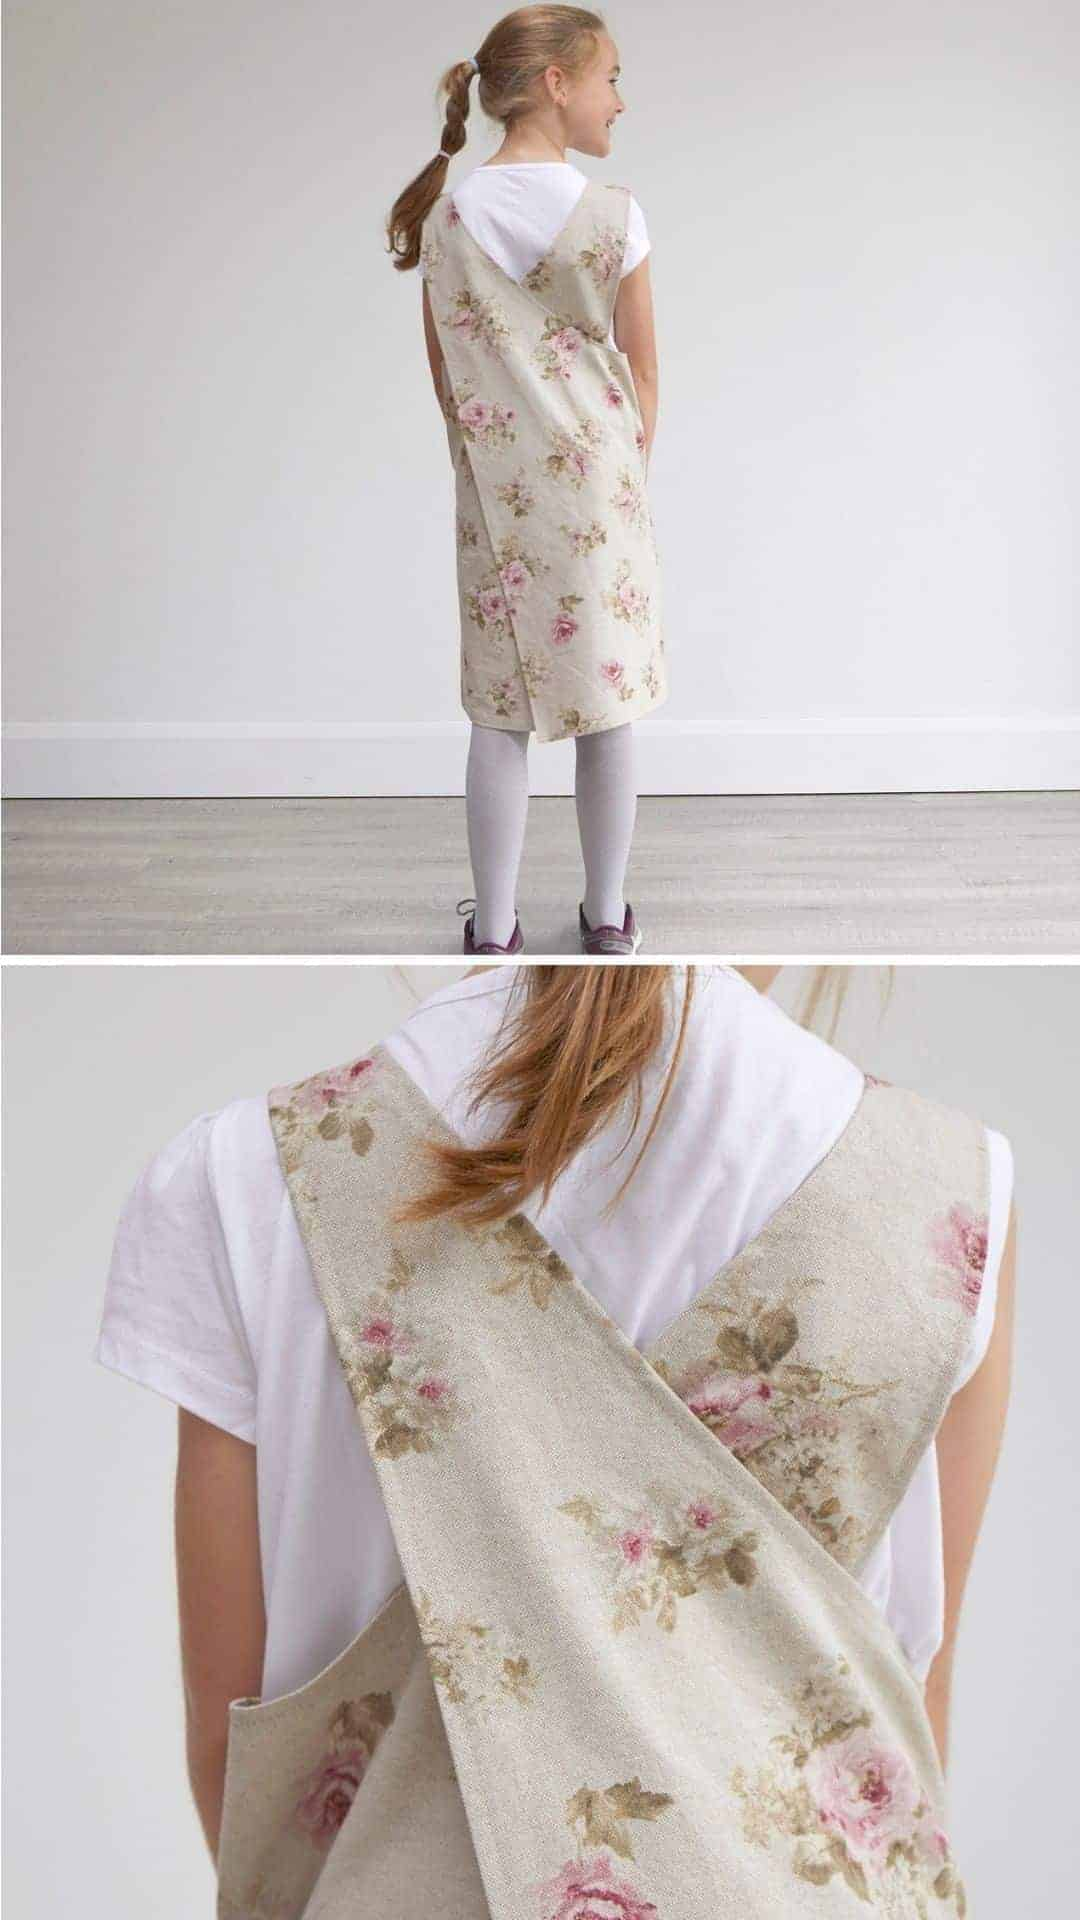 love this antique rose linen look japanese cross back apron for child handmade by Annie Willows. Matching adult apron available to buy too, with flower pockets on a plain apron #apron #rose #linenlook